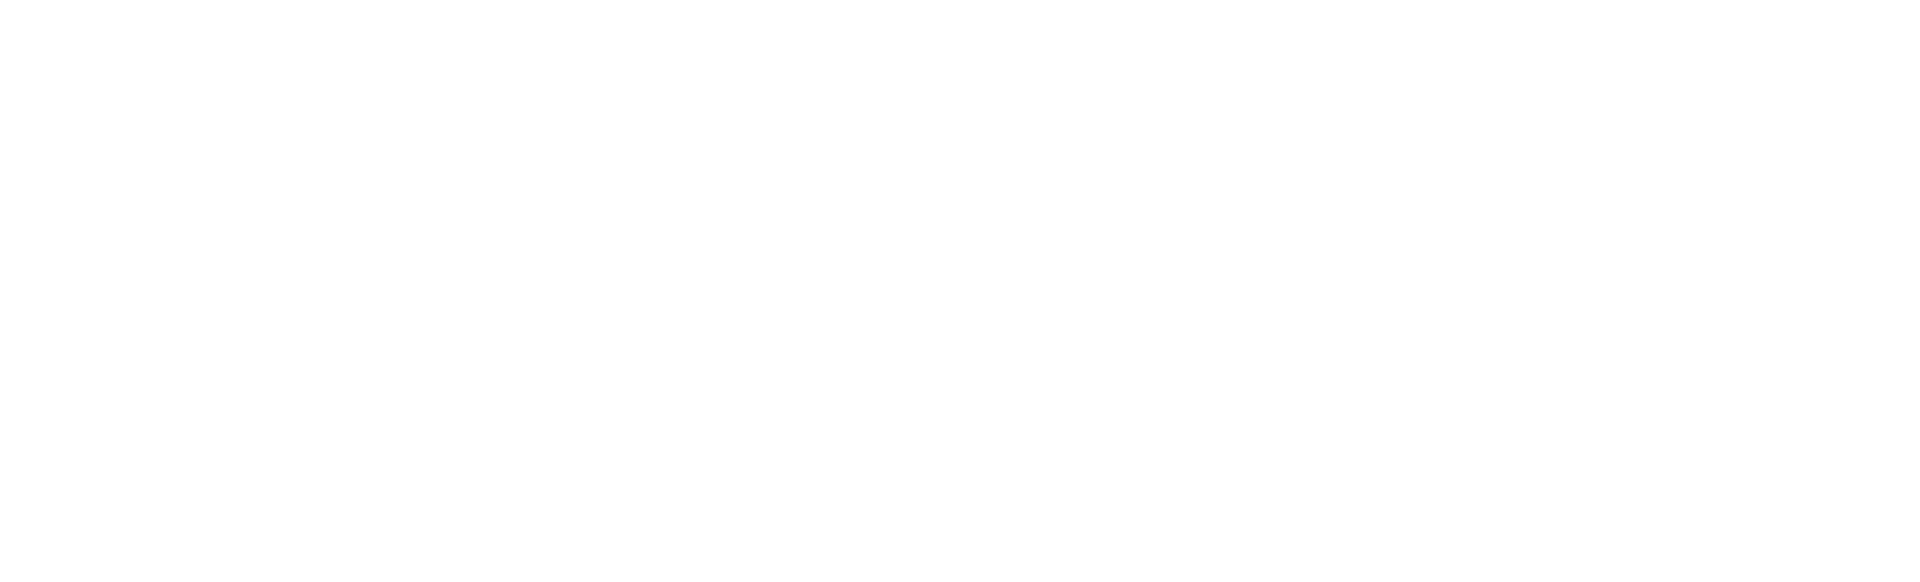 Crafting Experiences that Touch Lives, Building Strong Brands